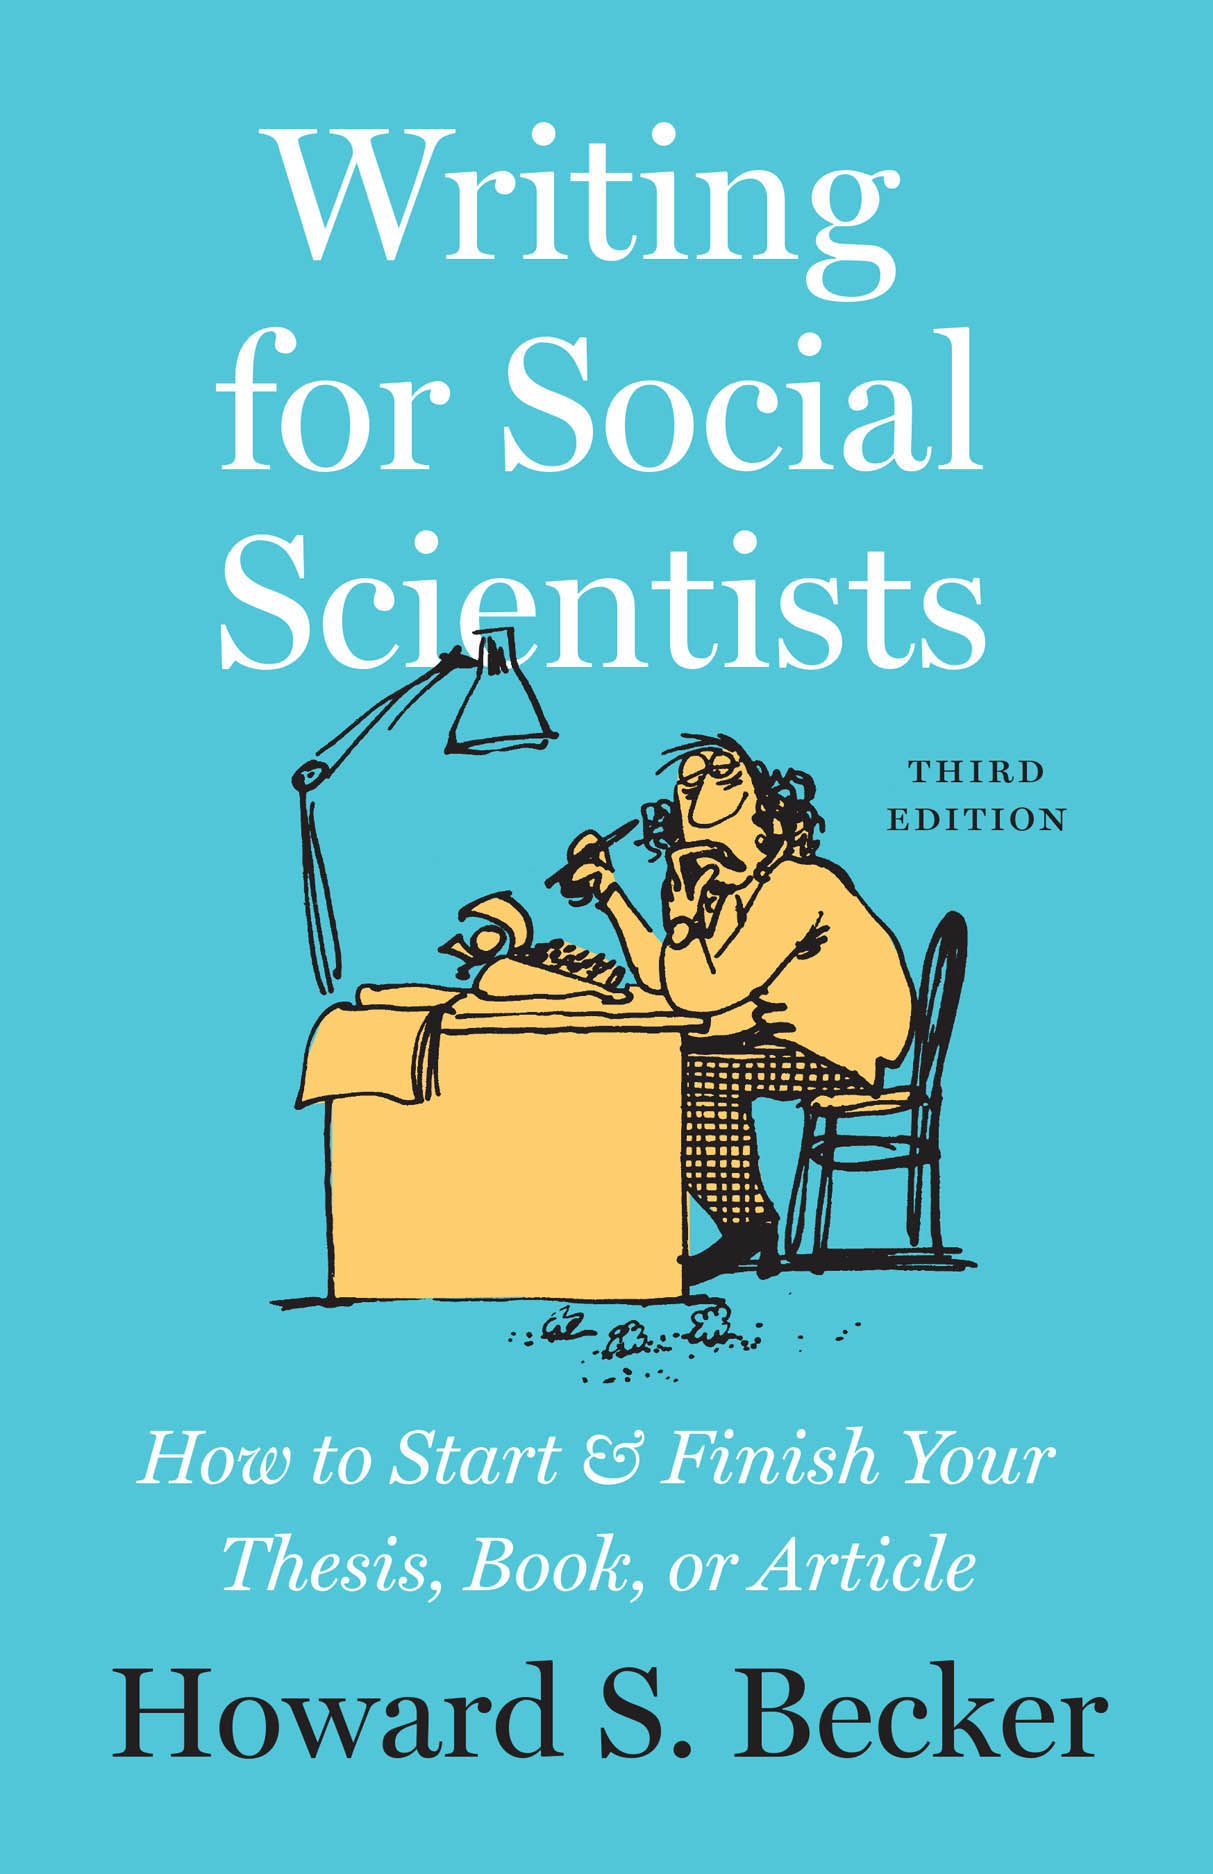 Writing for Social Scientists: How to Start and Finish Your Thesis, Book, or Article, Third Edition